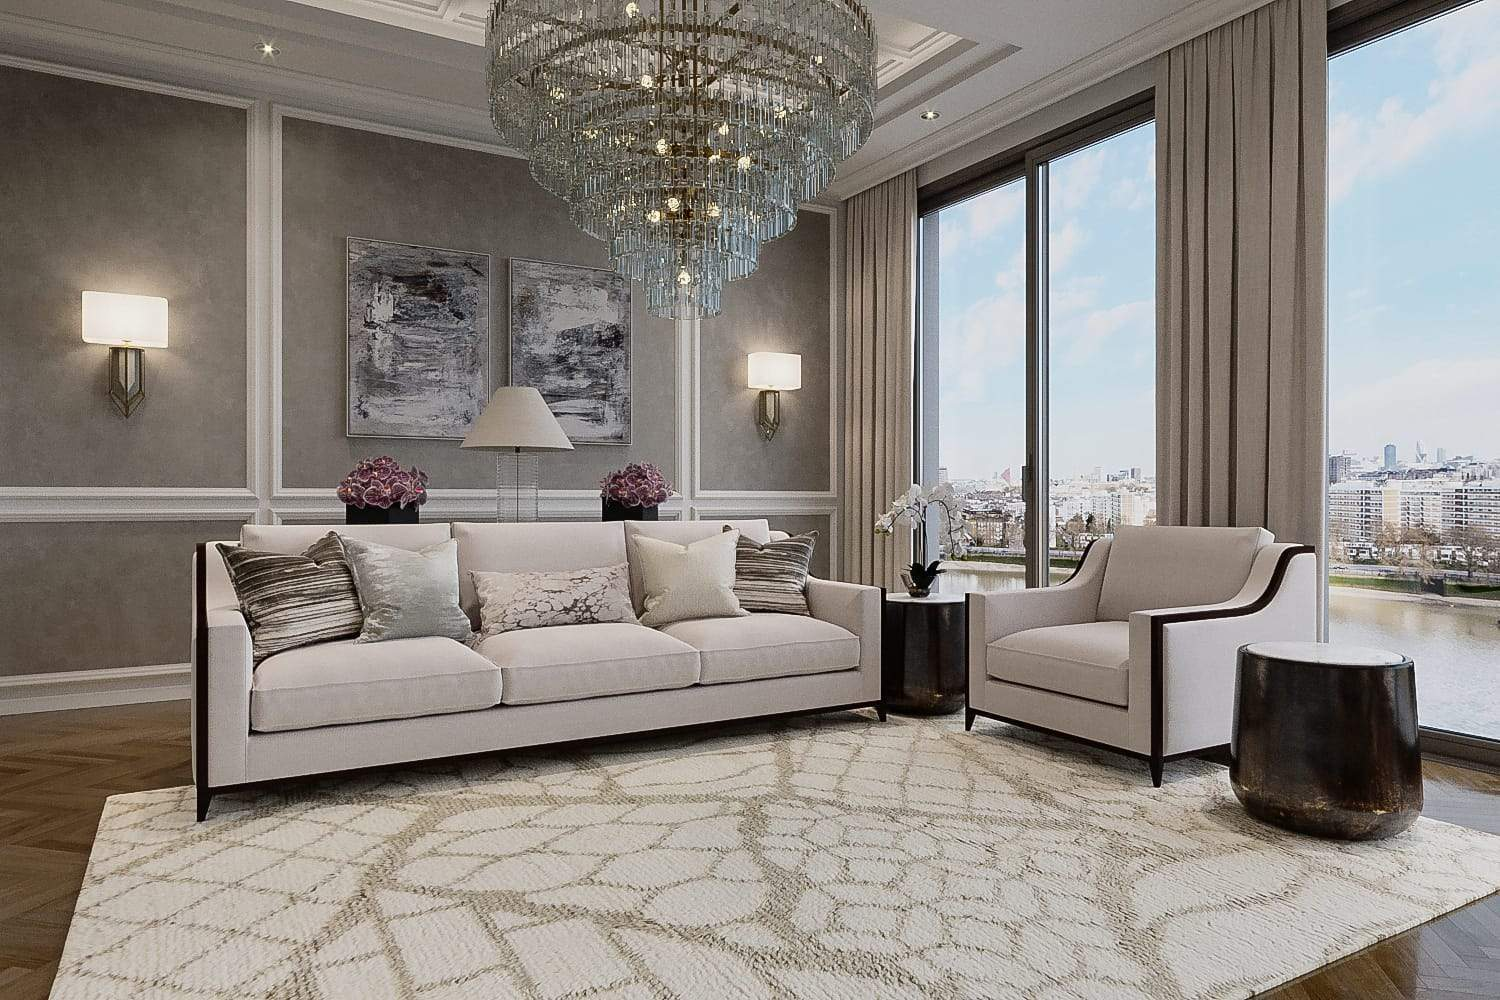 Installation shot of Uroko Tan, a hand knotted rug designed by Tufenkian Artisan Carpets. room-image